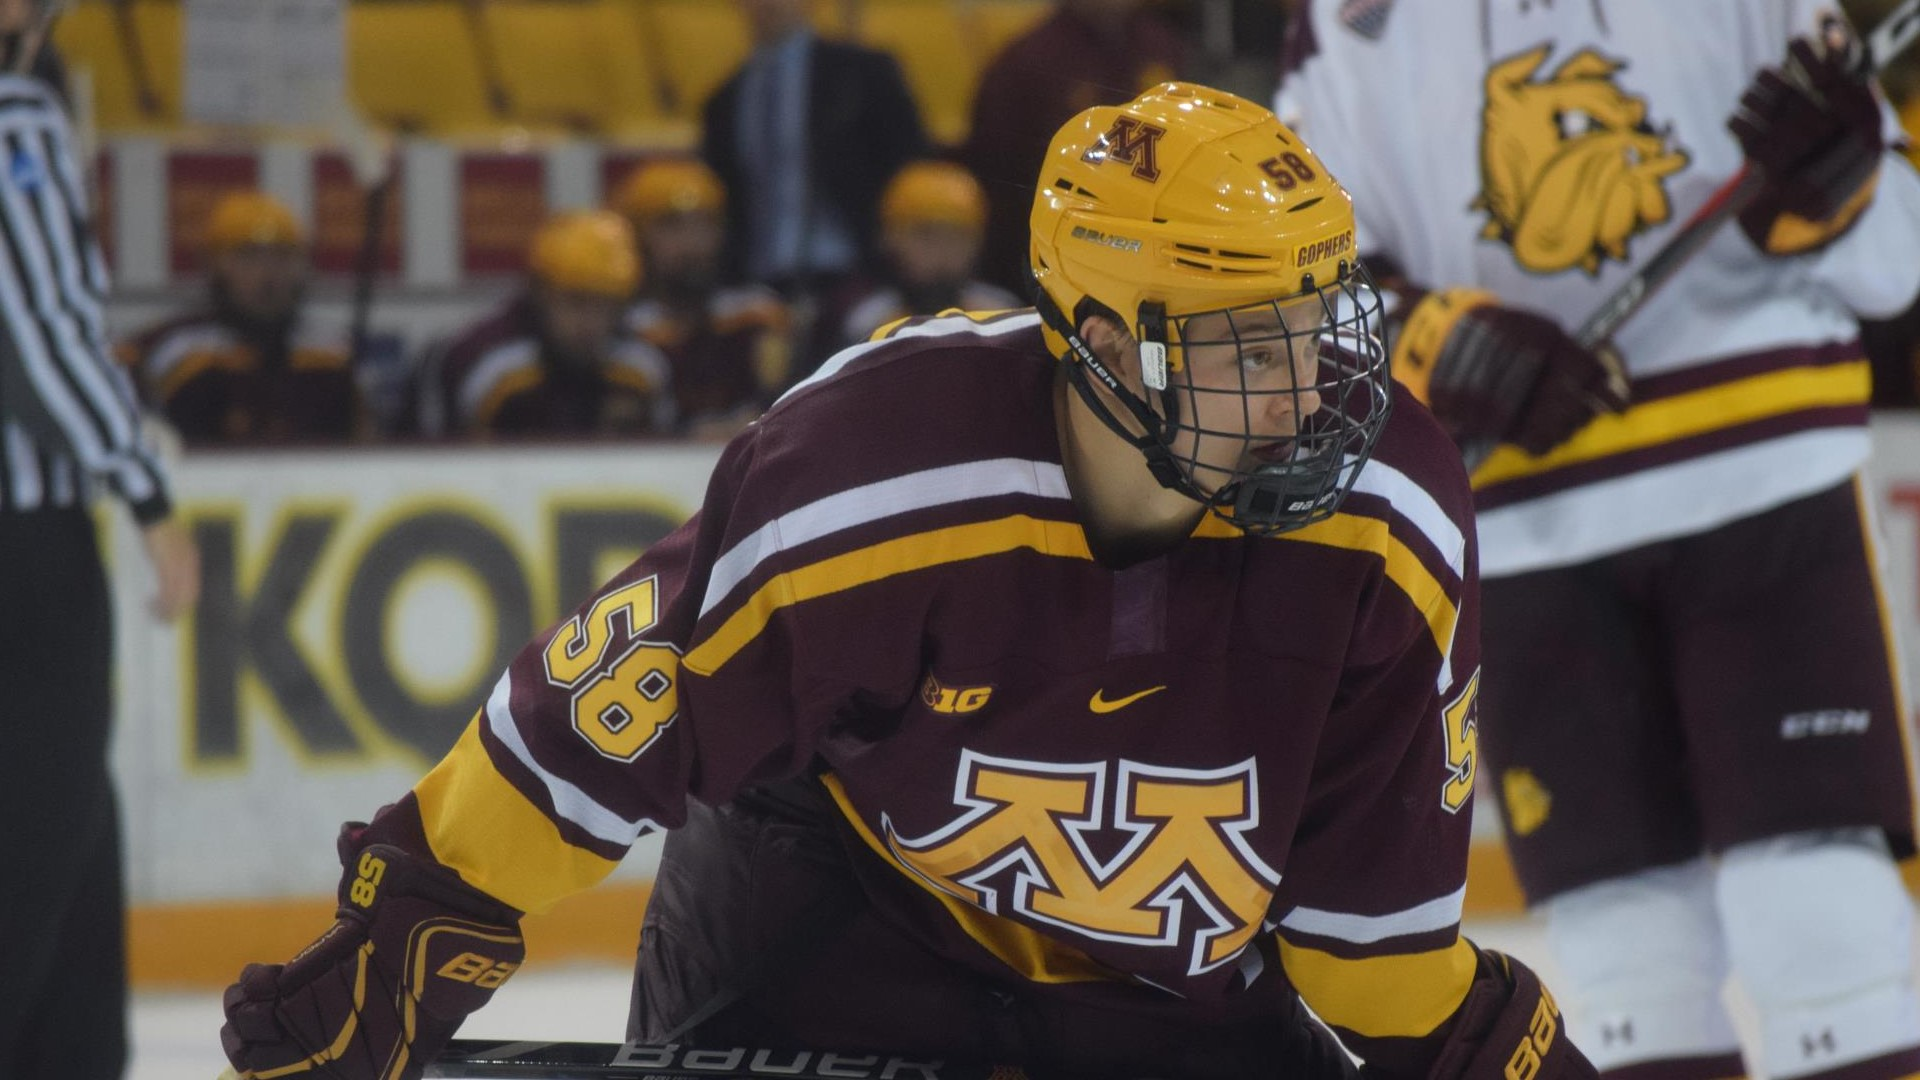 Gophers Open Season With Tie At Top-Ranked UMD